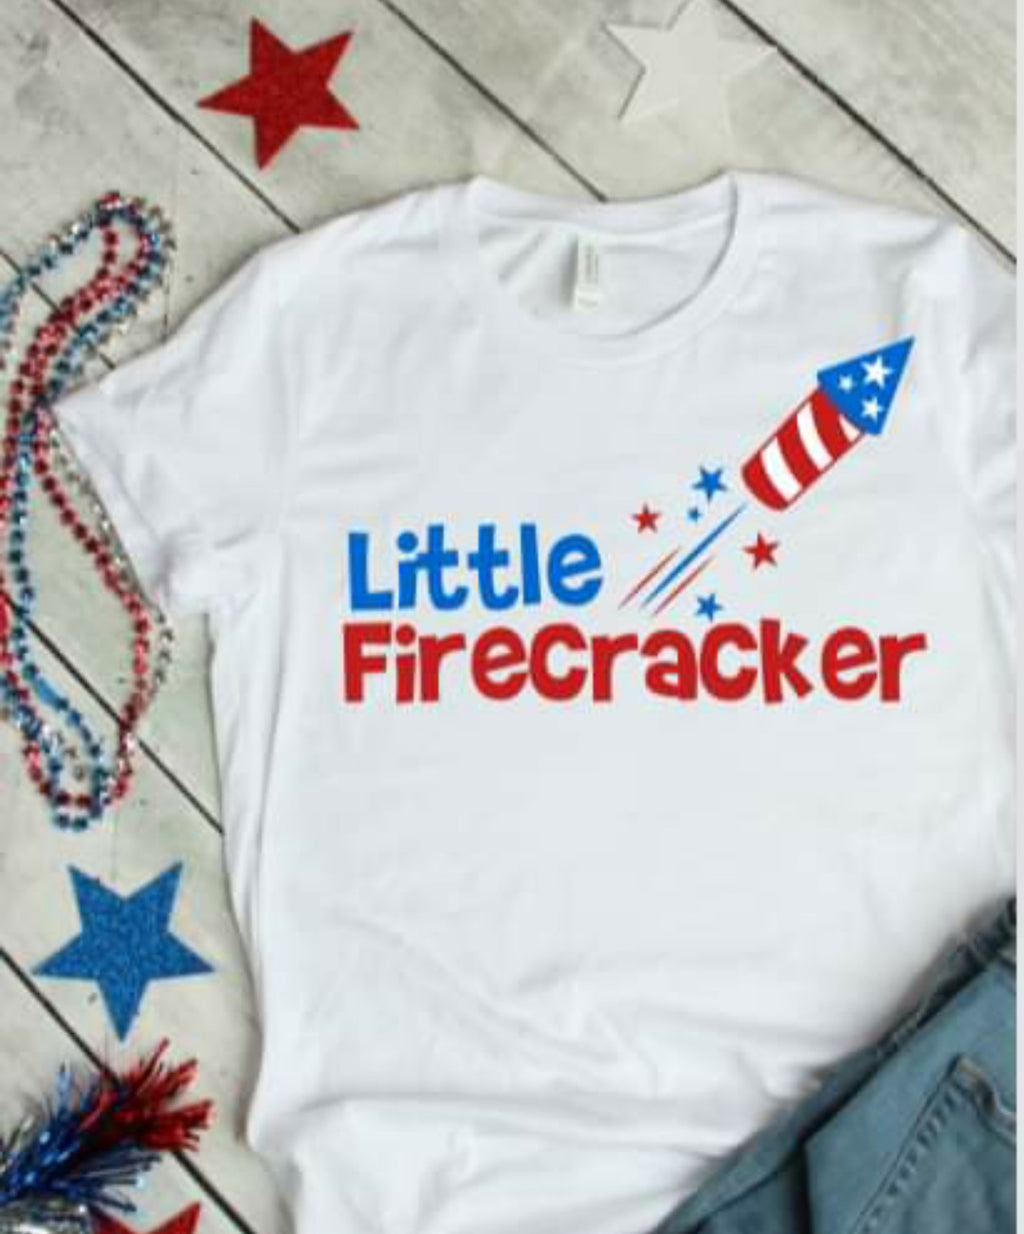 Little firecracker